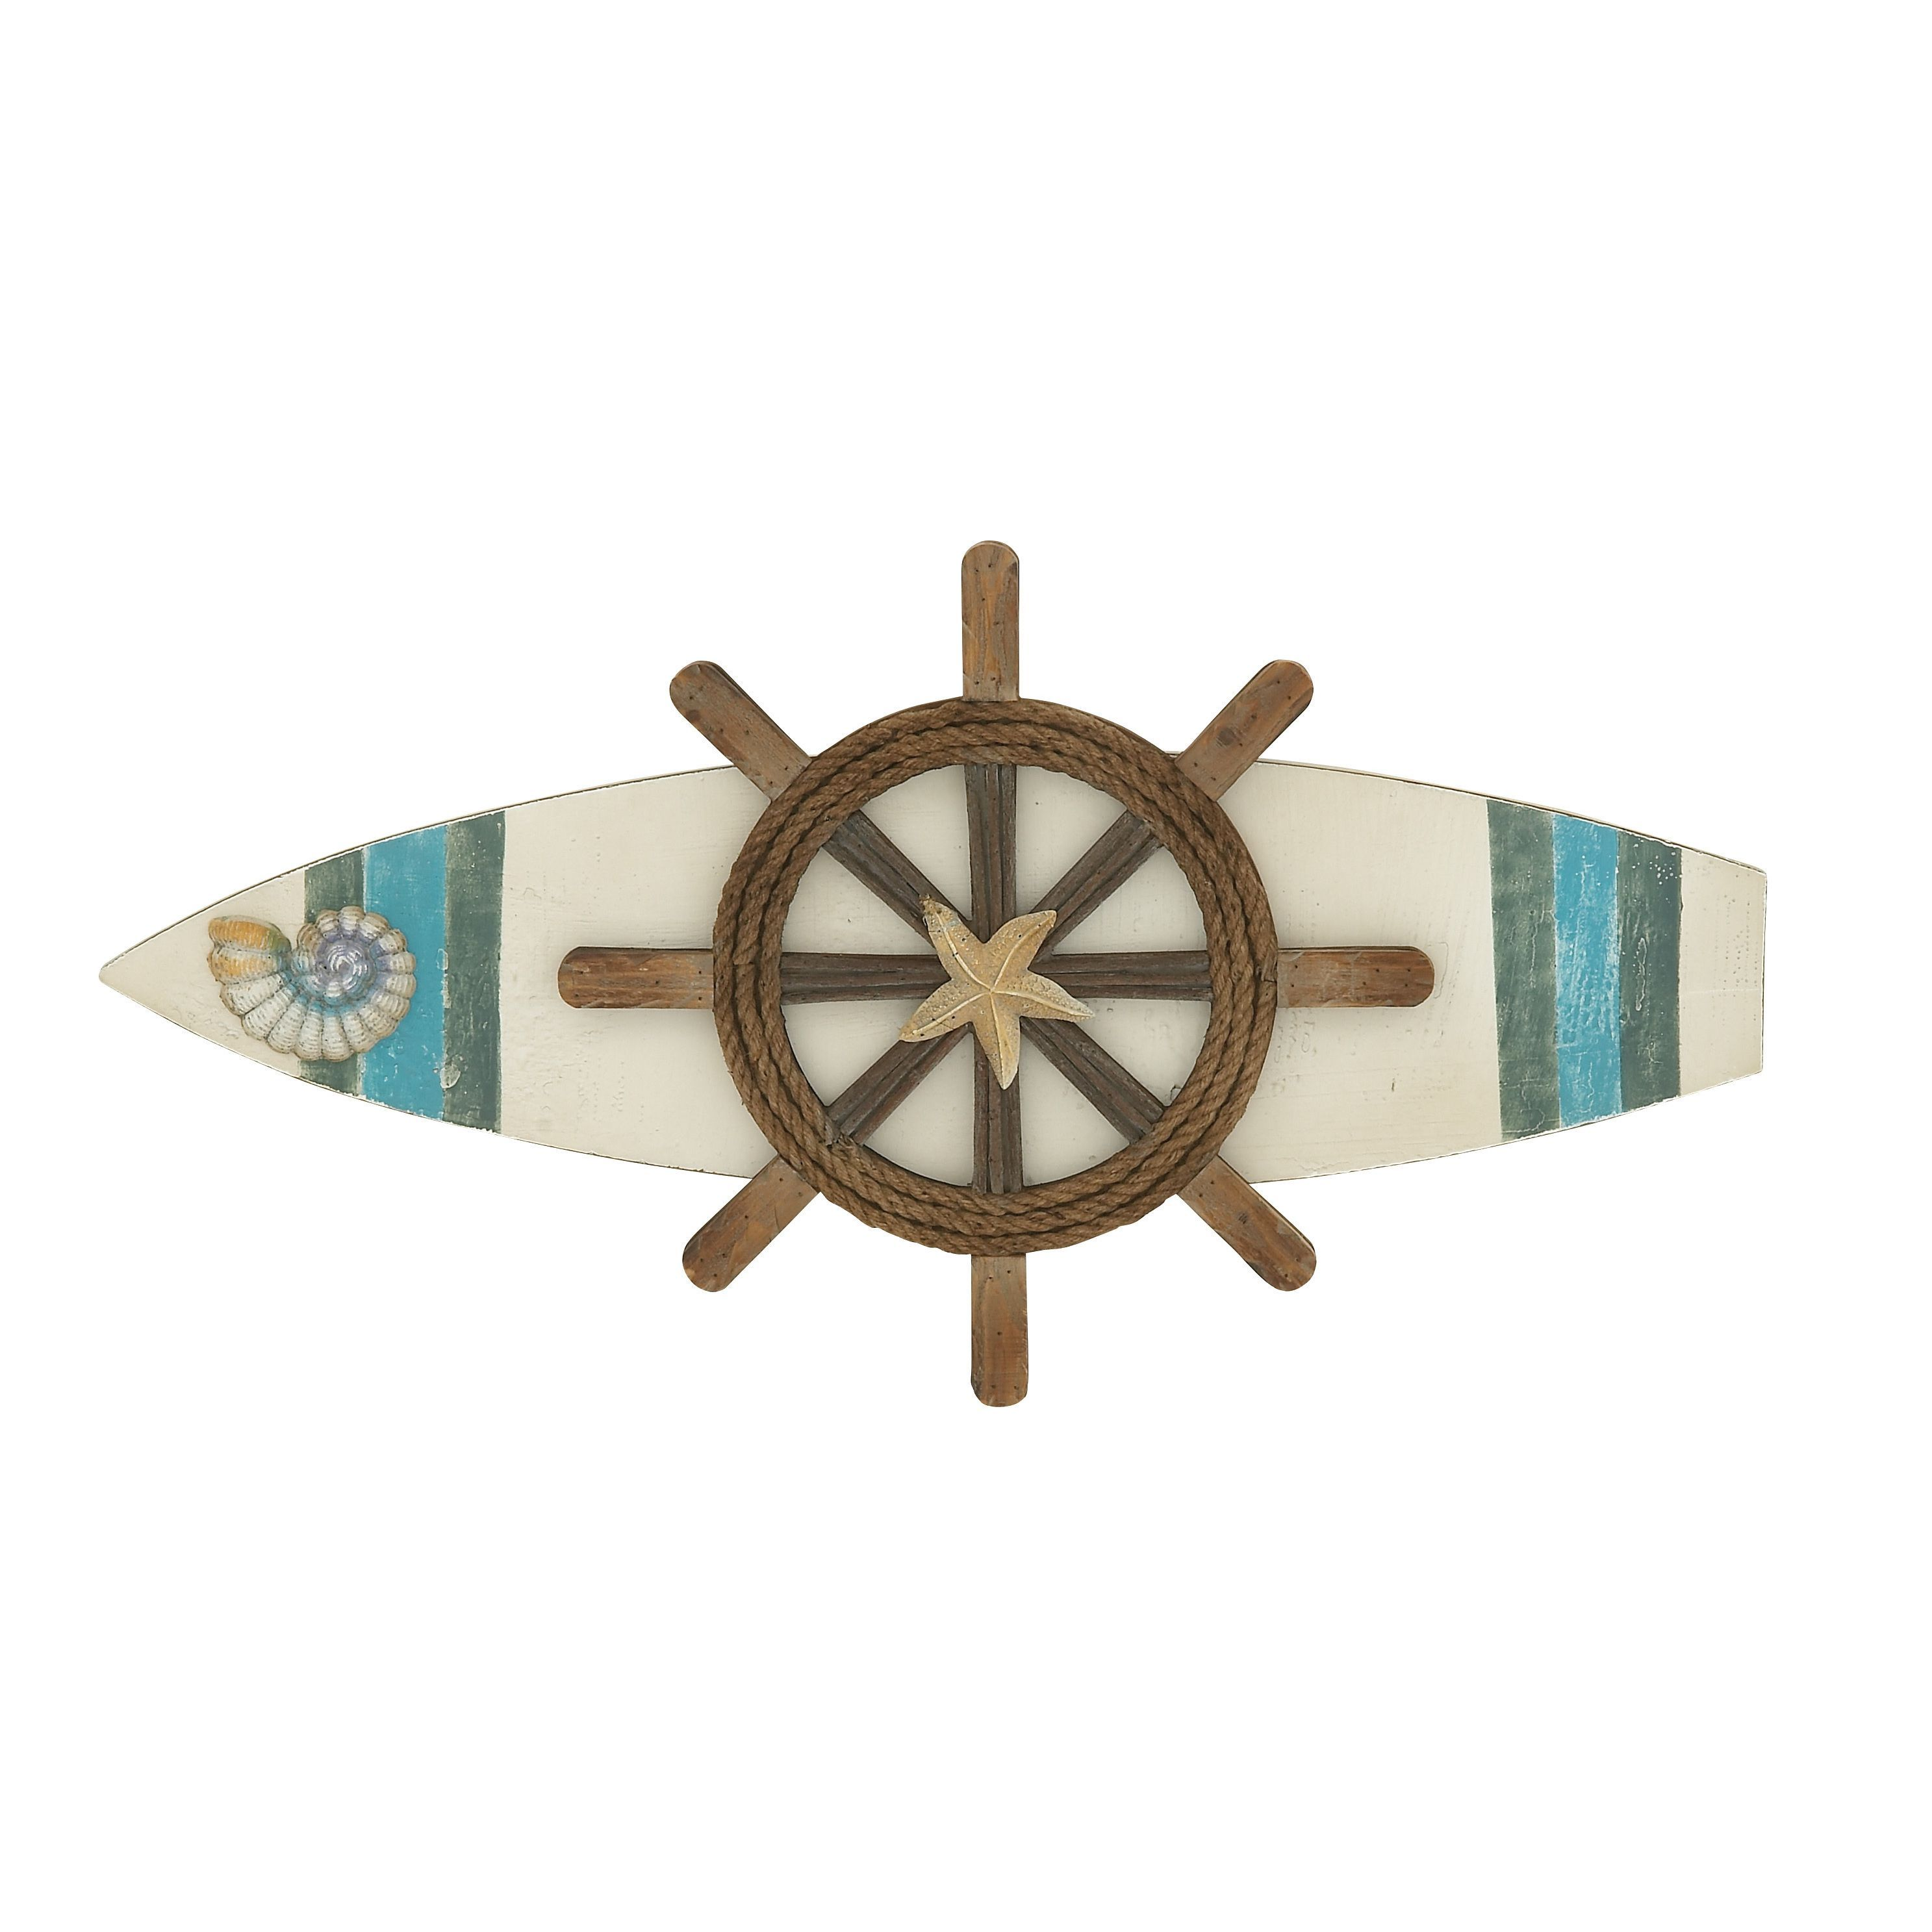 Incorporate oceanic imagery into your living room or den with this